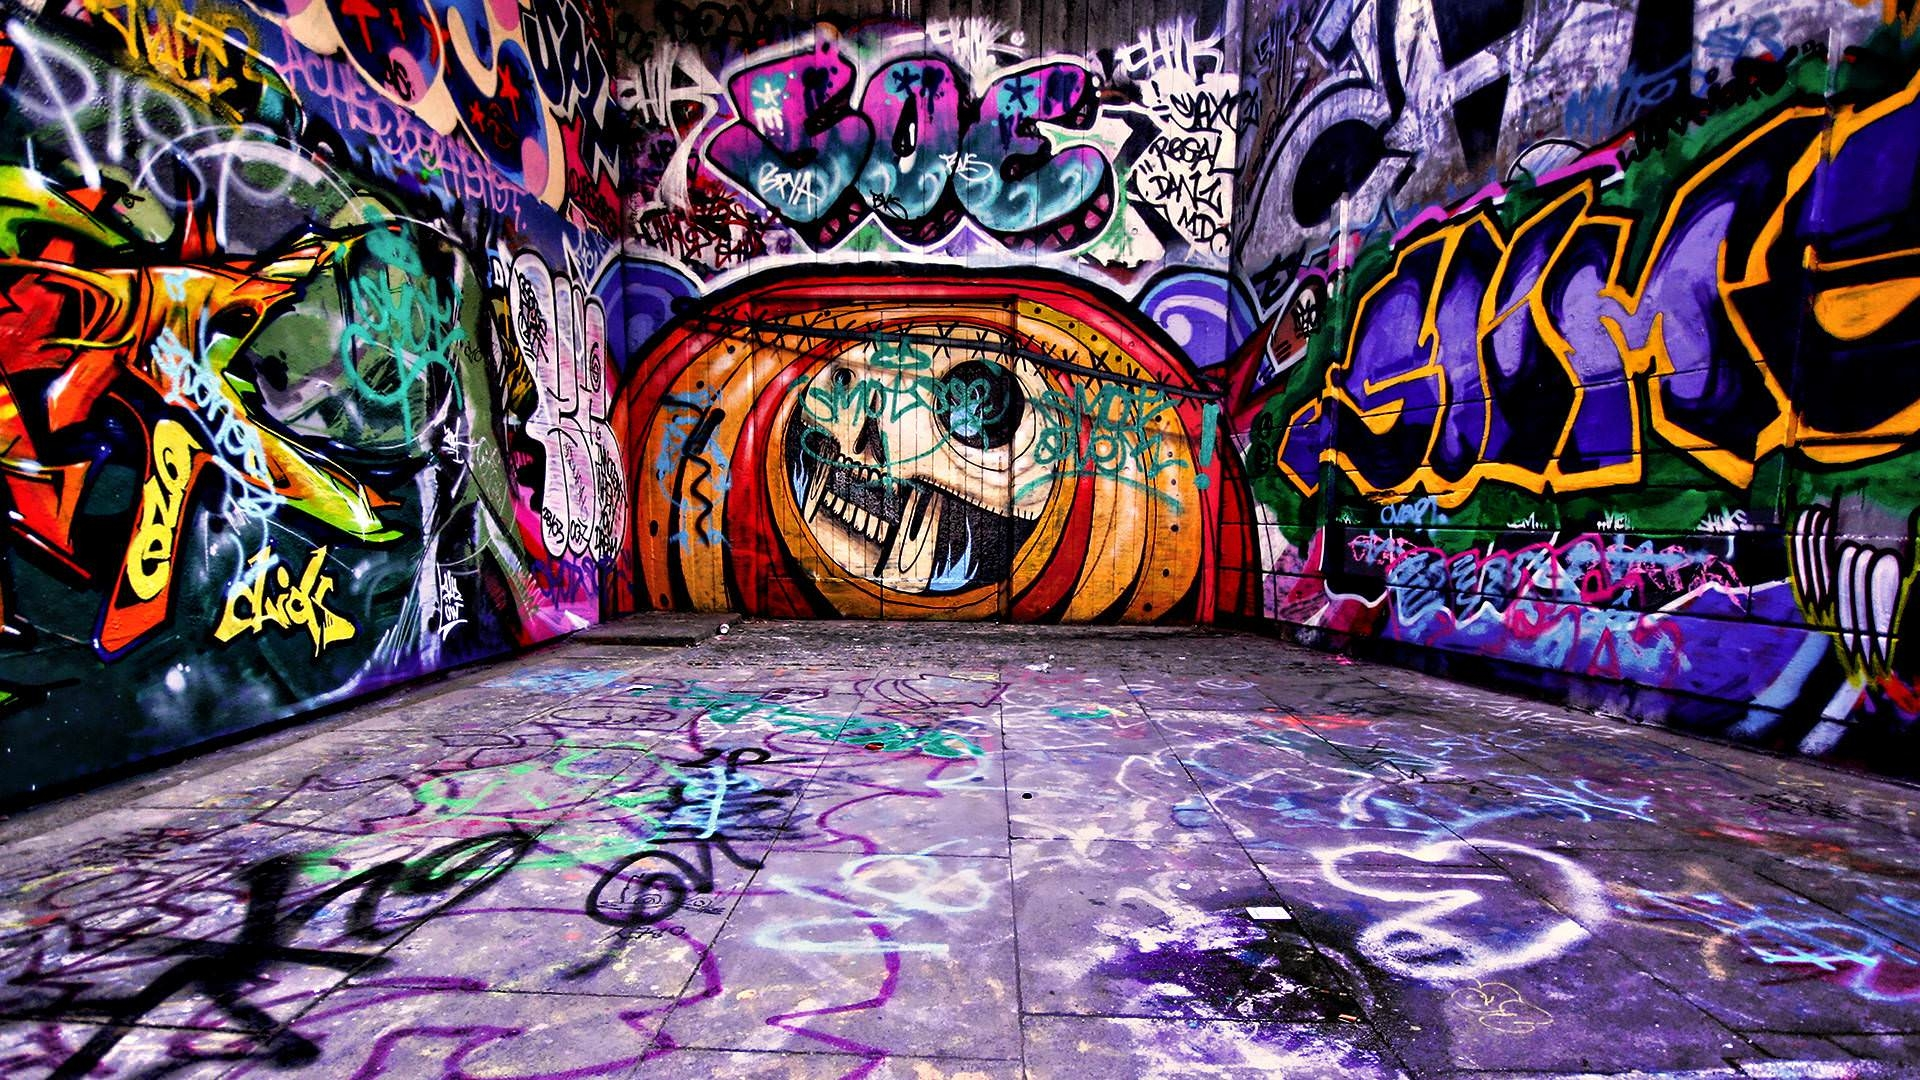 Amazing Graffiti Wallpaper